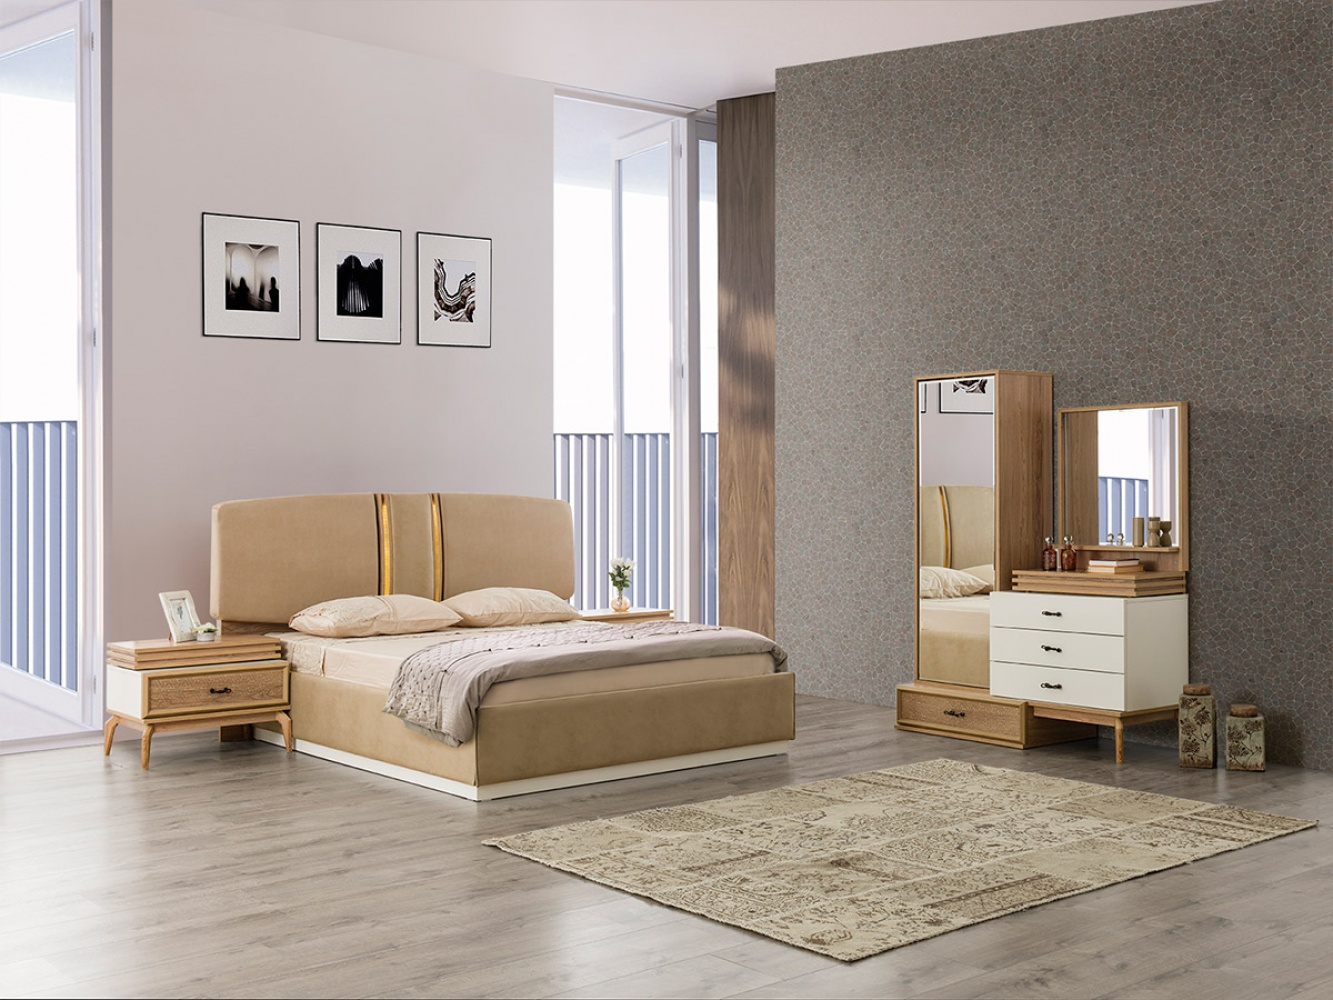 kommode schlafzimmer schlafzimmer set 4 tlg wandtattoo pusteblume deutsche bettdecken. Black Bedroom Furniture Sets. Home Design Ideas